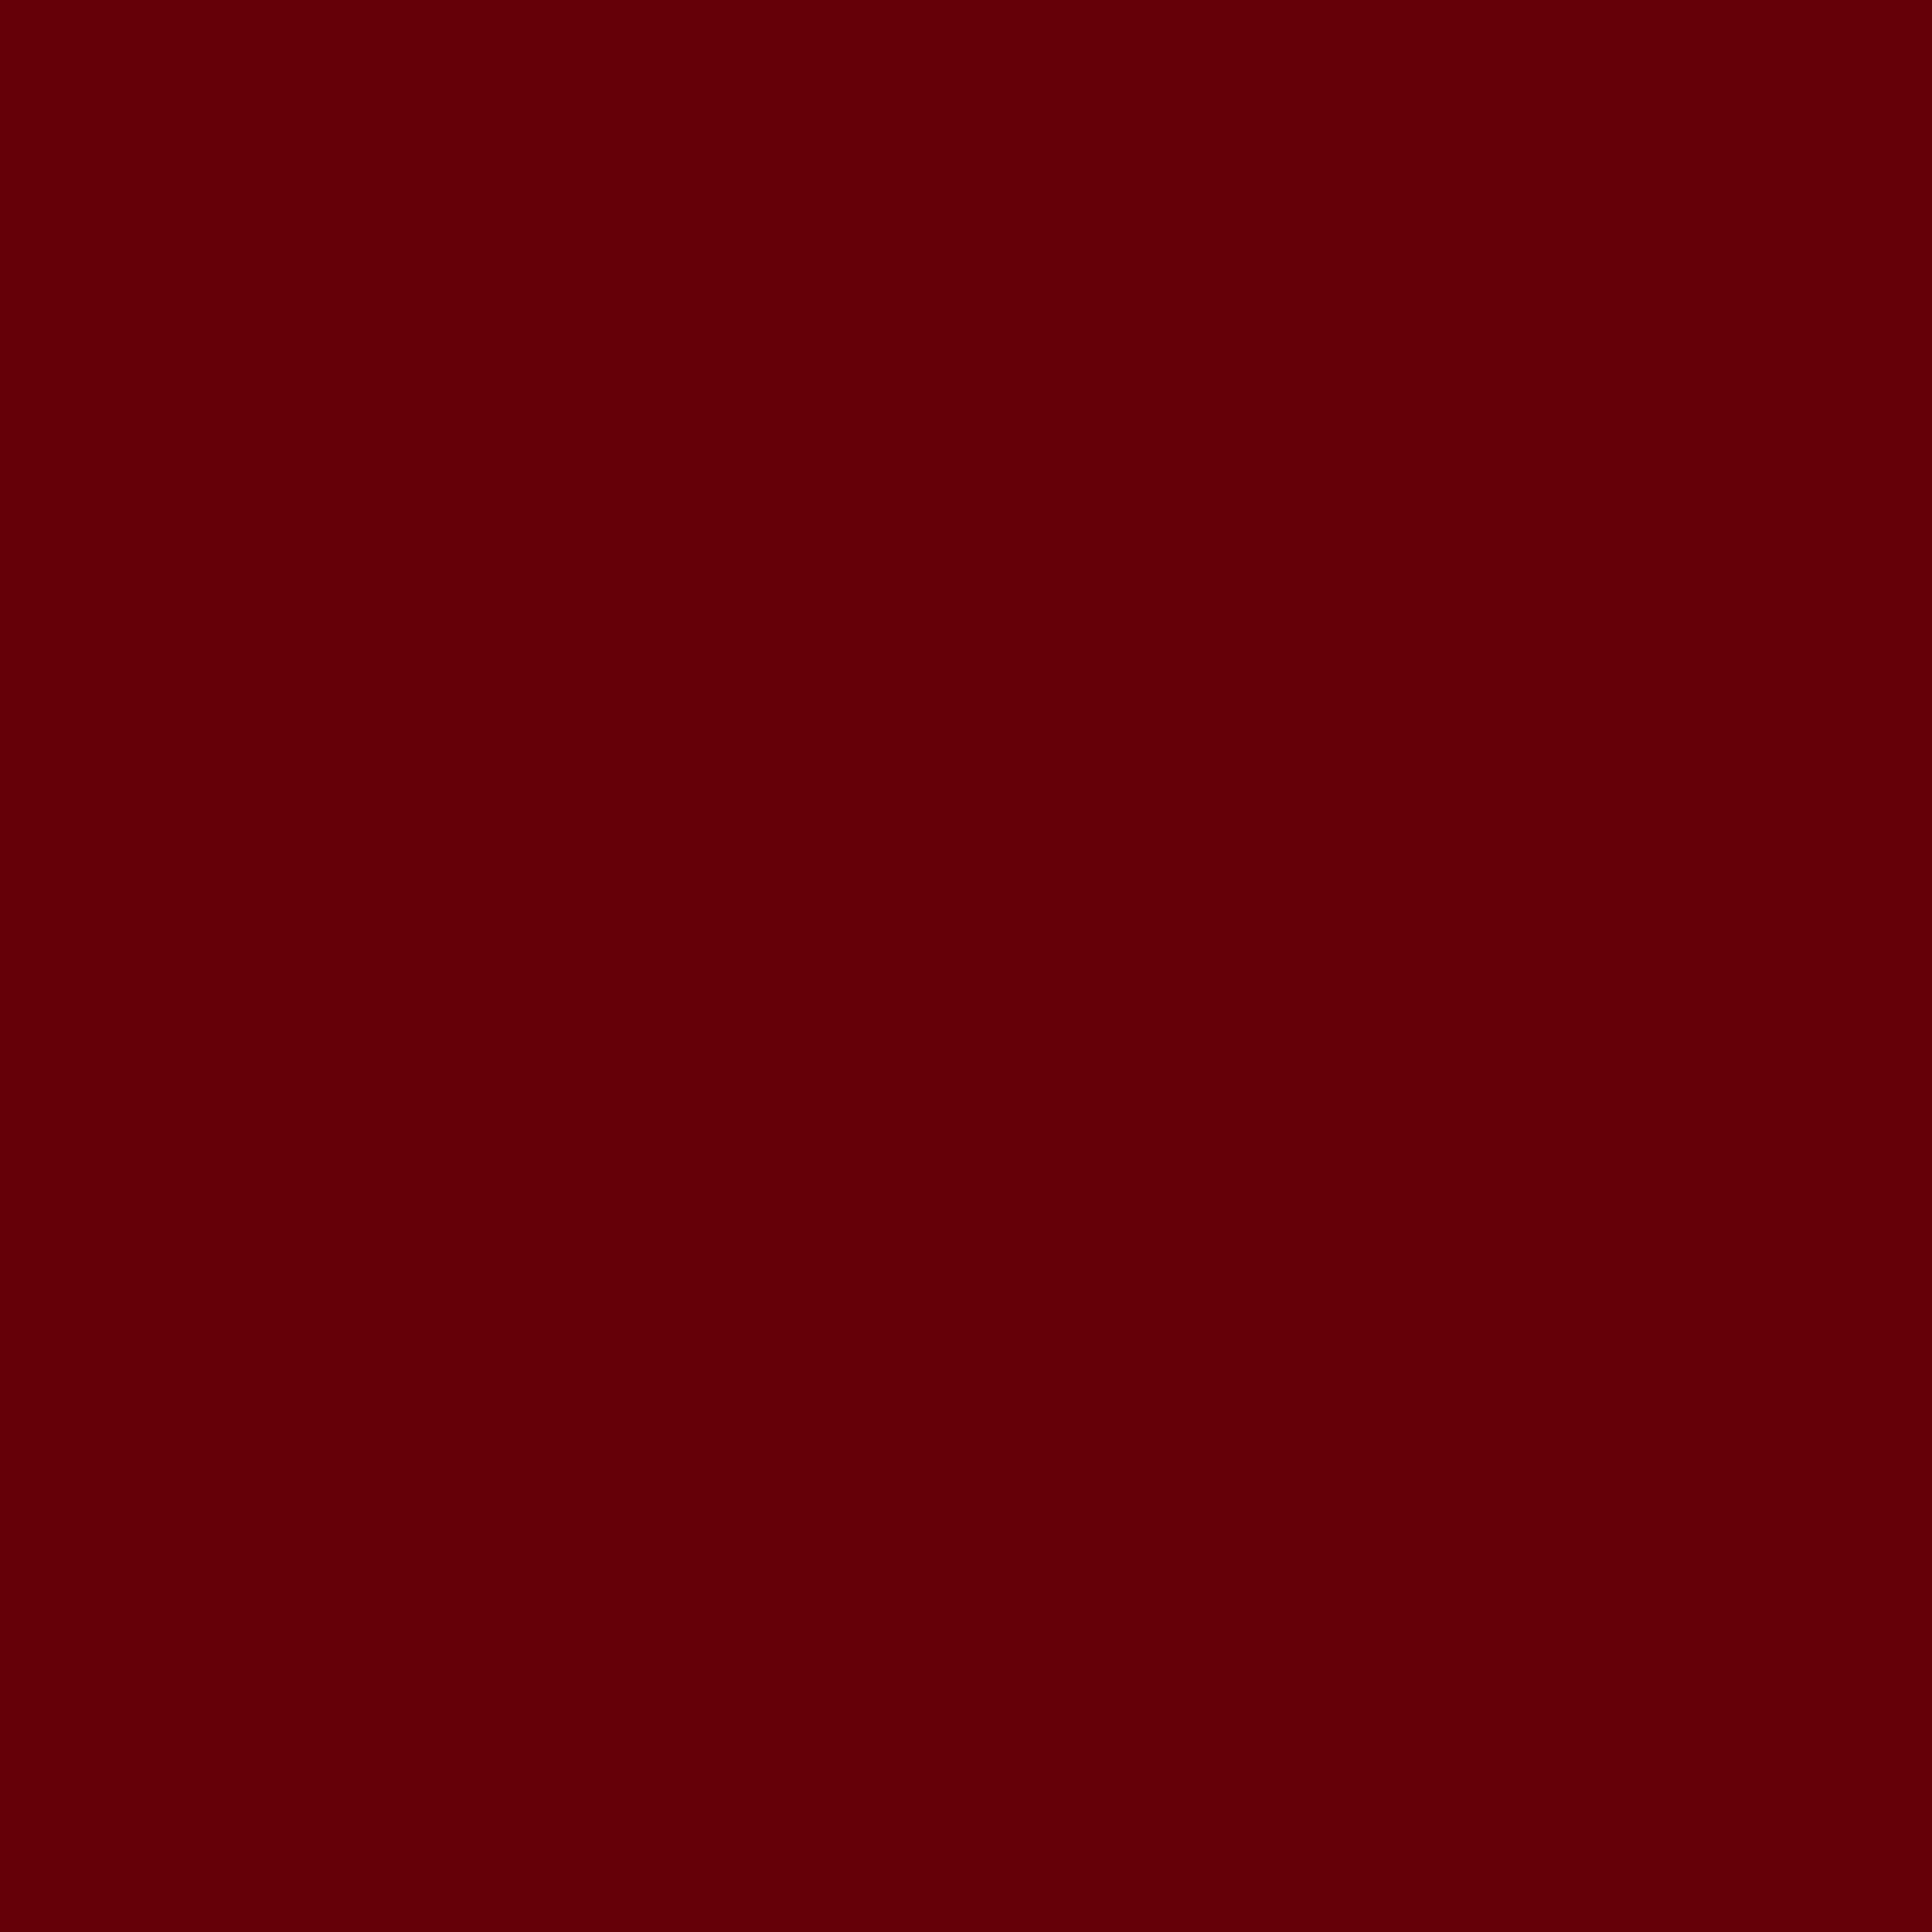 3600x3600 Rosewood Solid Color Background